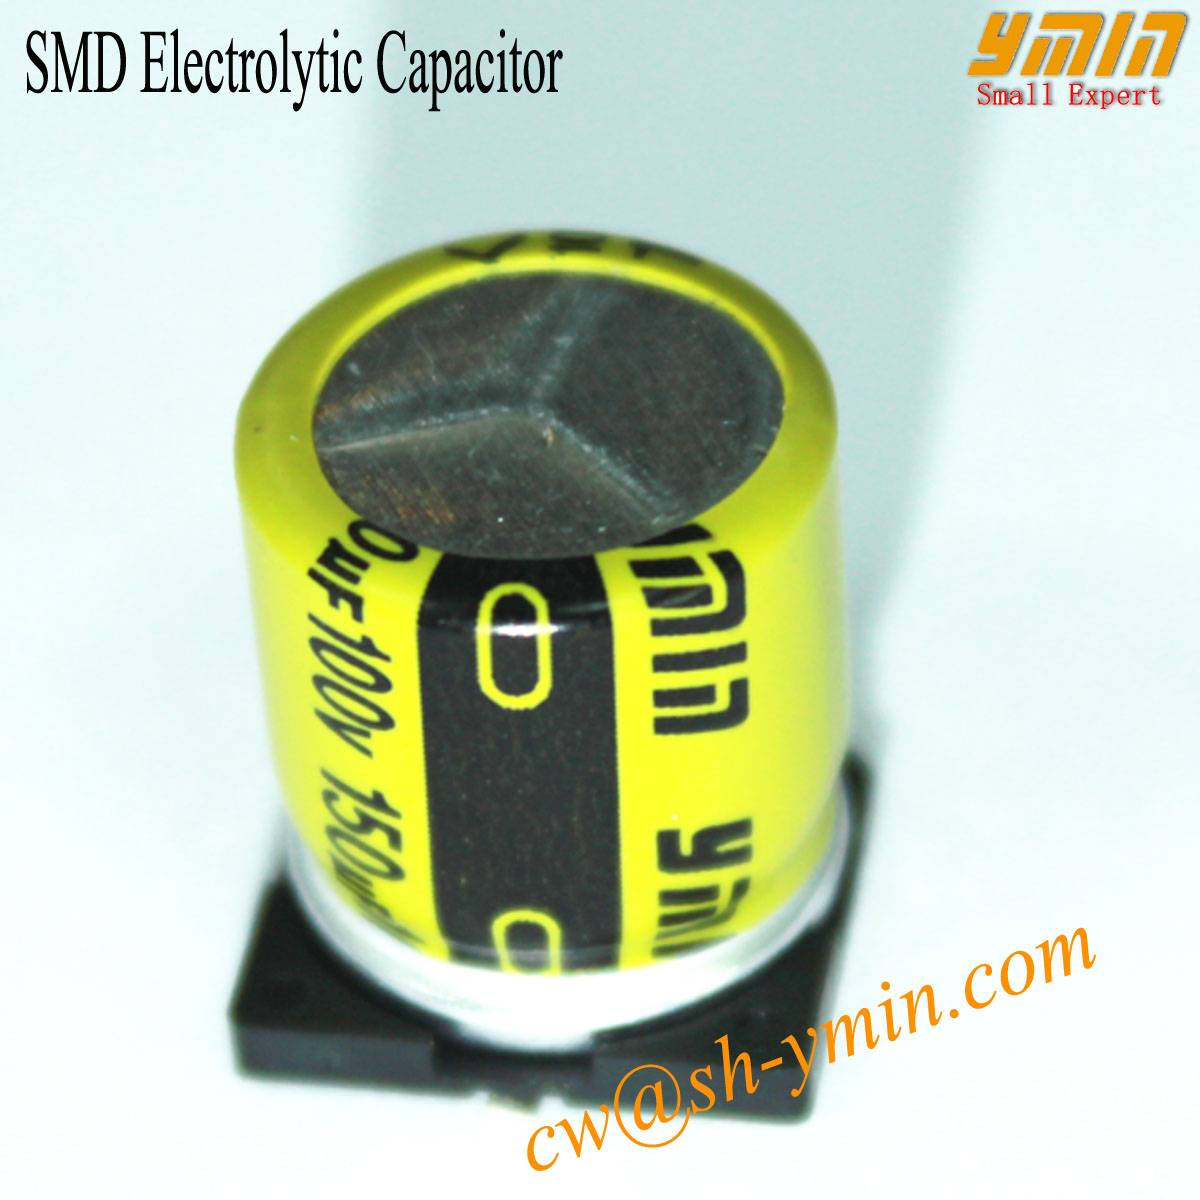 SMD Capacitor Aluminum Electrolytic SMD Capacitor for LED Lighting and General Purpose